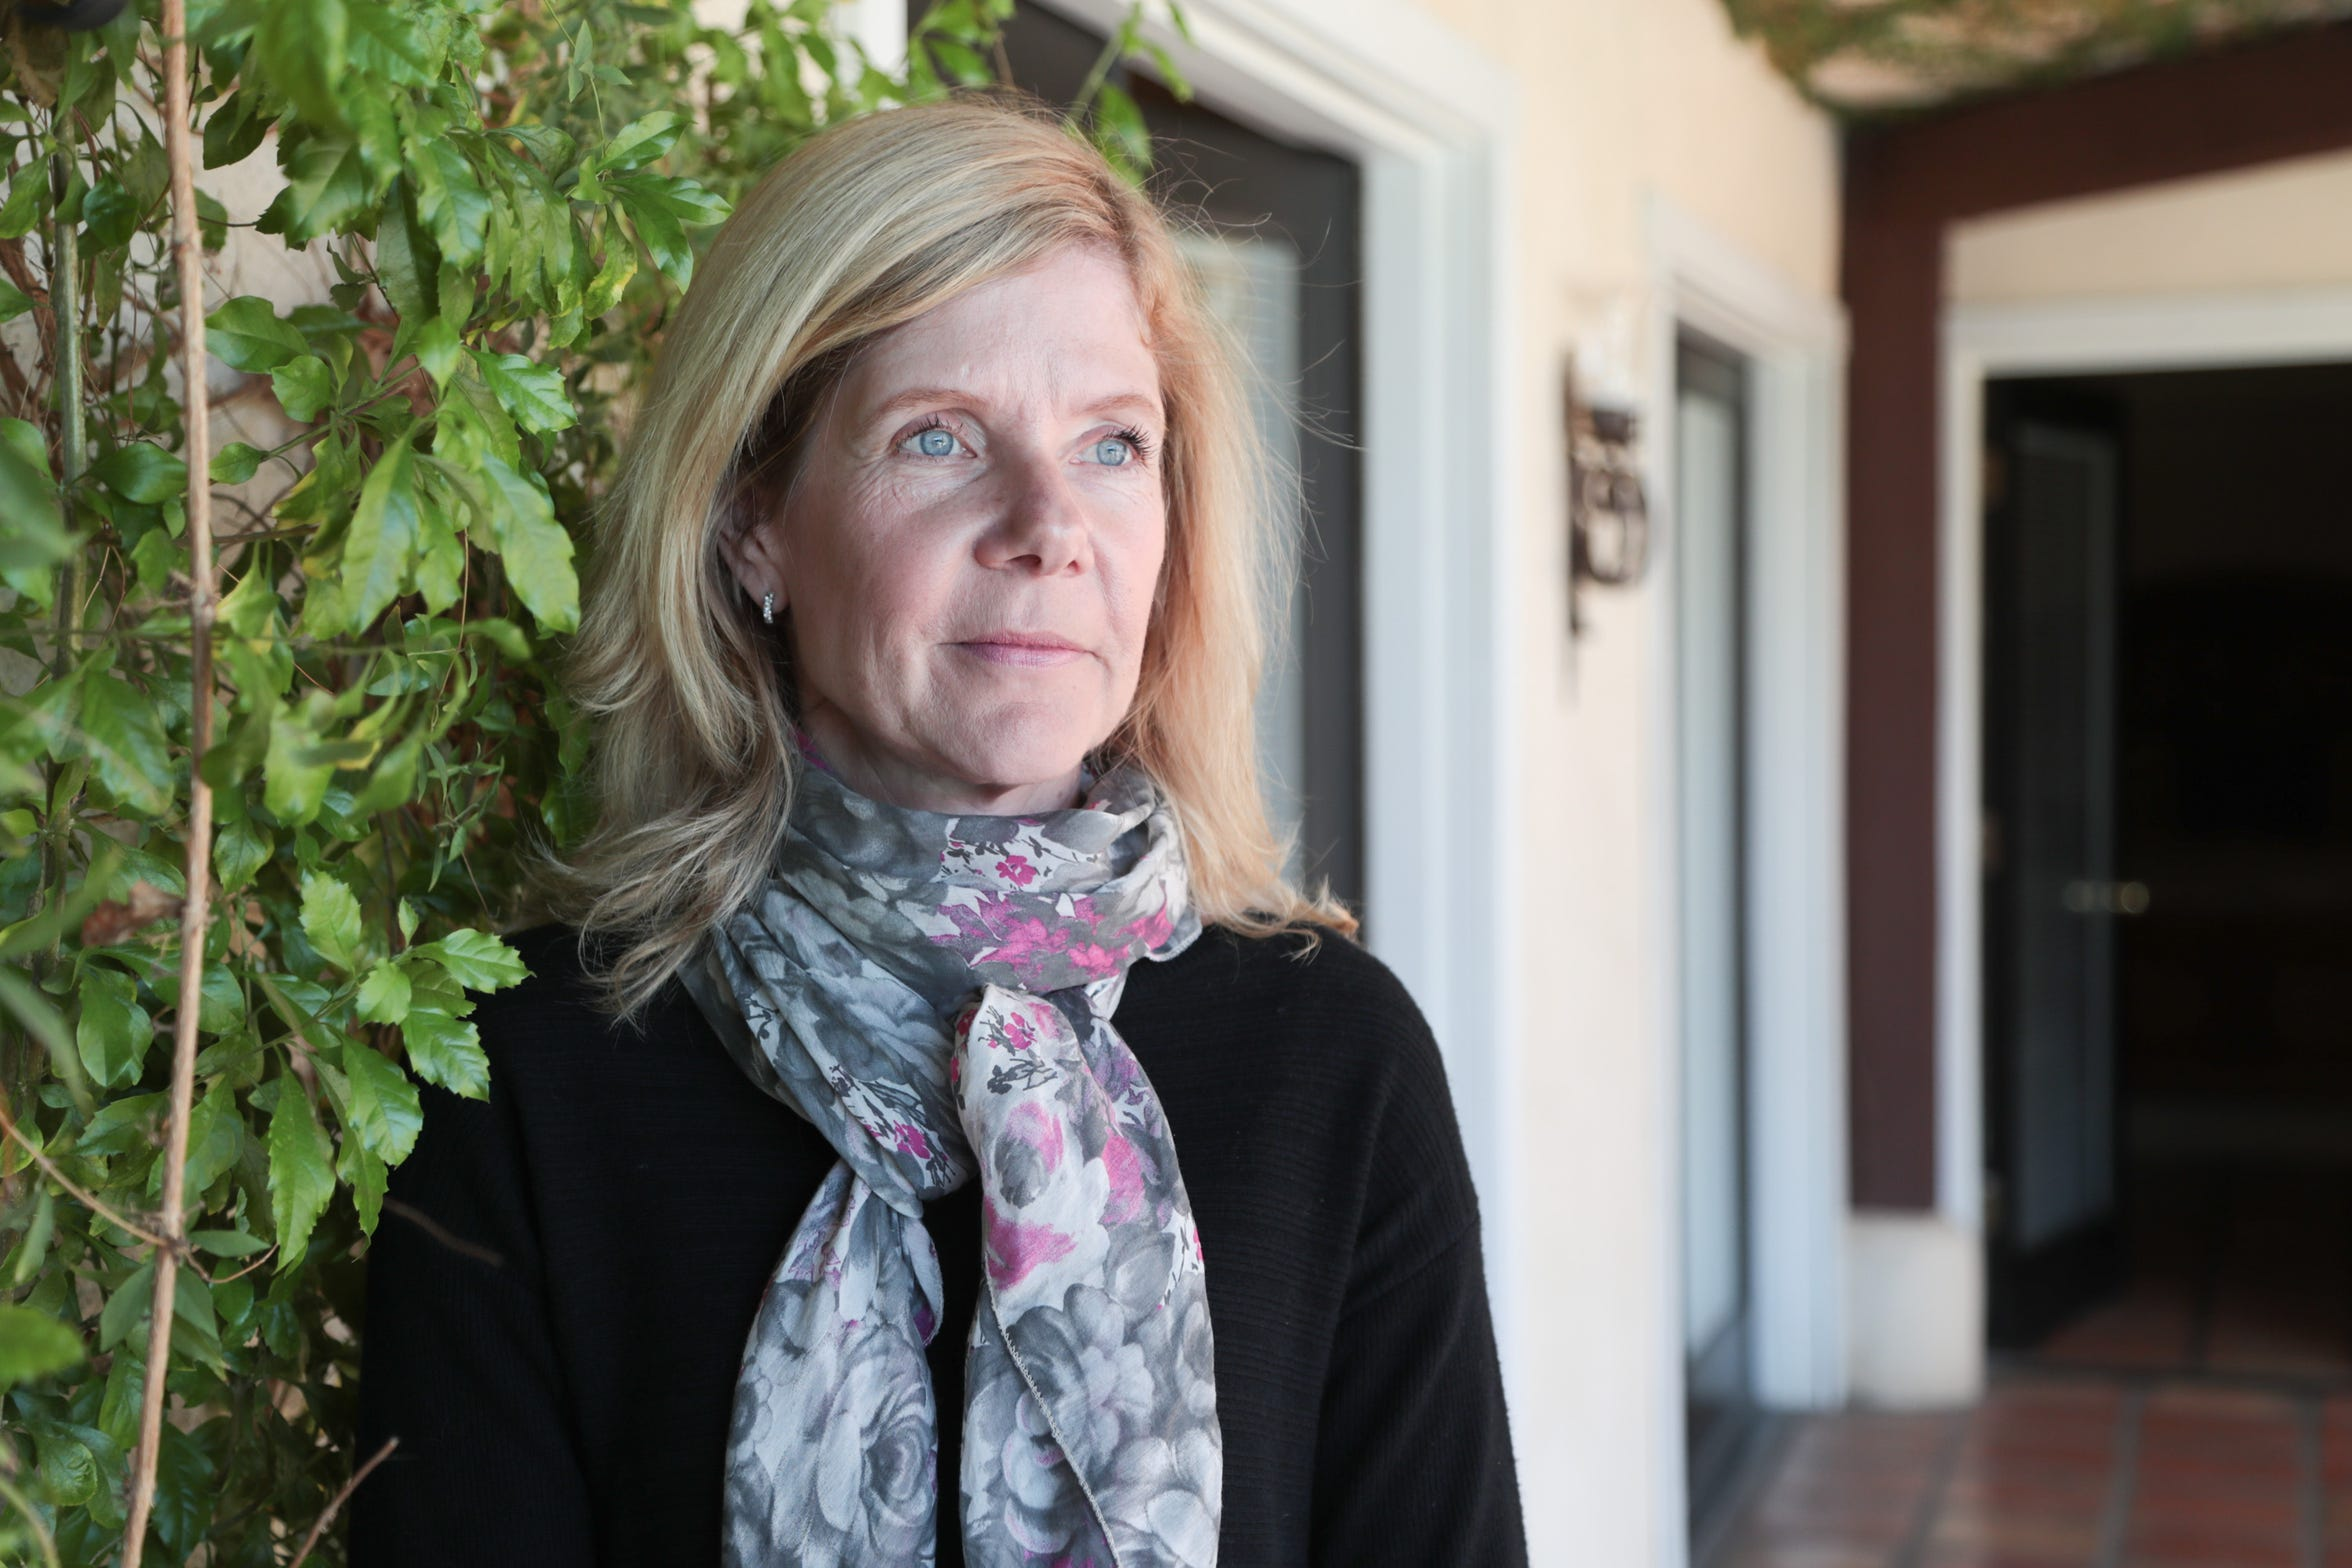 Cornelia Schuster is the owner of La Maison Hotel in Palm Springs. She's concerned that the development of larger hotels will hurt business for small hotels like hers.